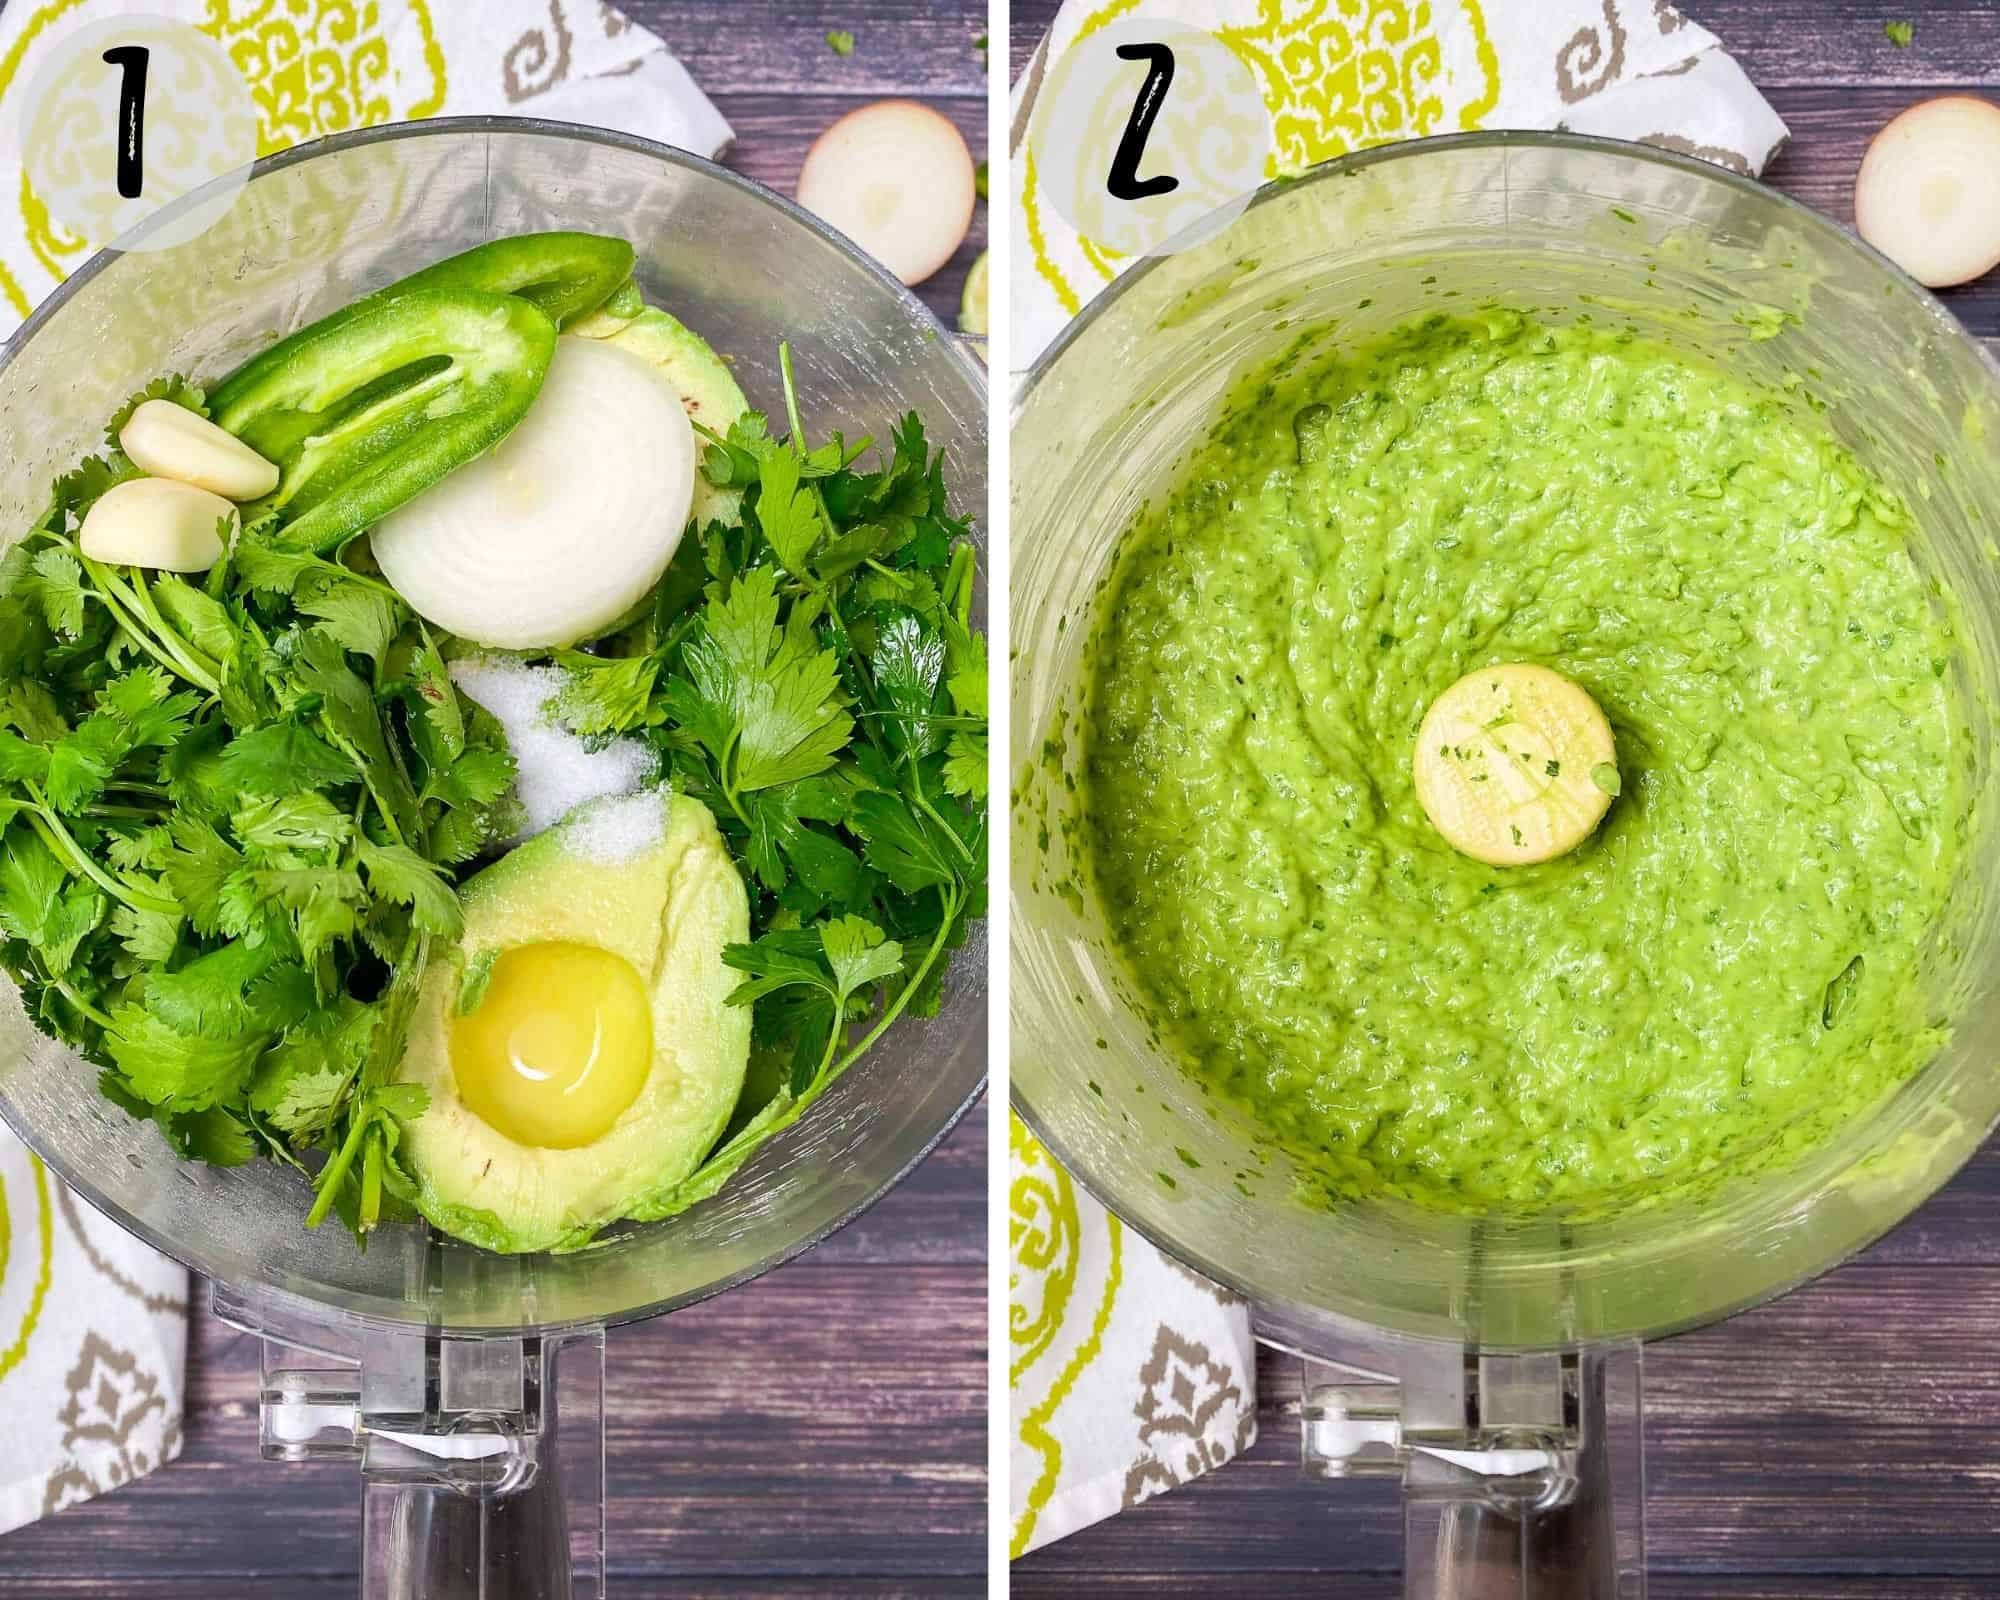 food processor filled with avocado, herbs, onion, jalapeno, salt and garlic to make dip